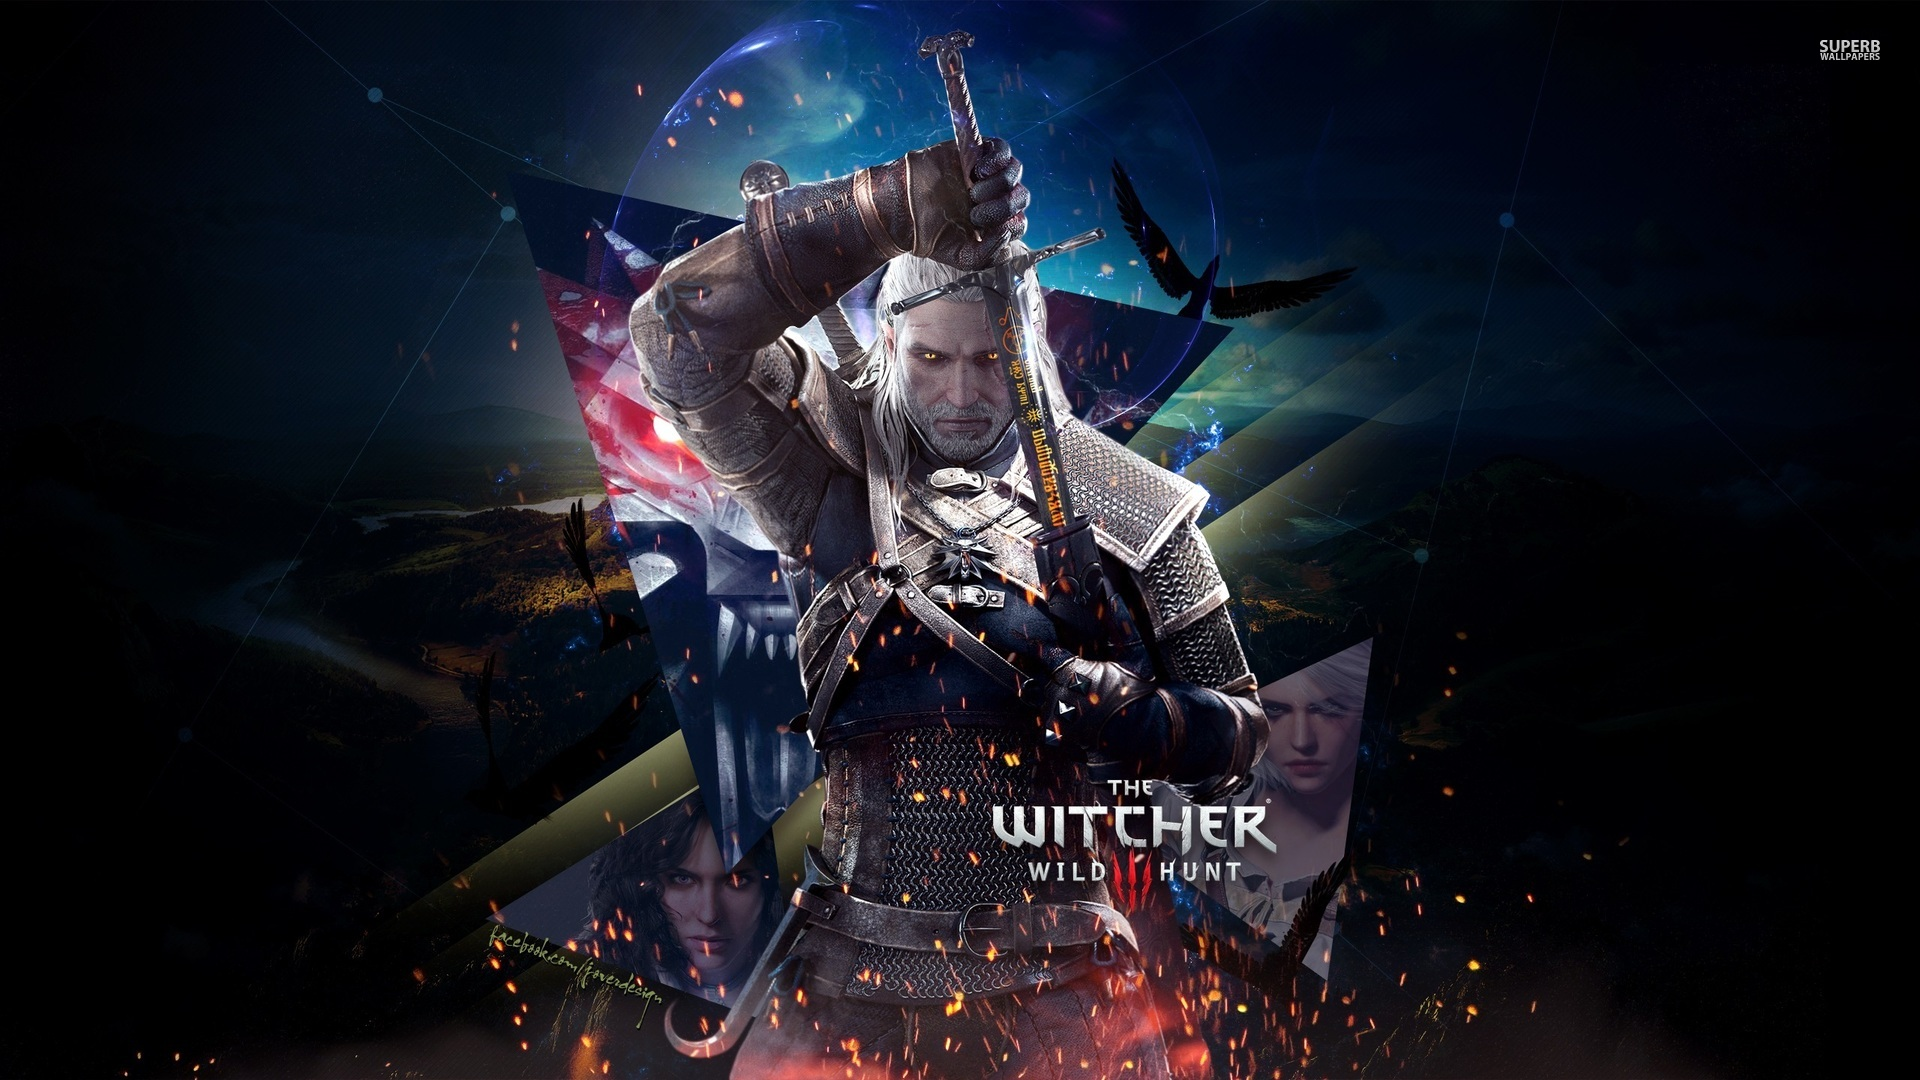 The Witcher : Wild Hunt HD Wallpapers  Backgrounds 1920x1080